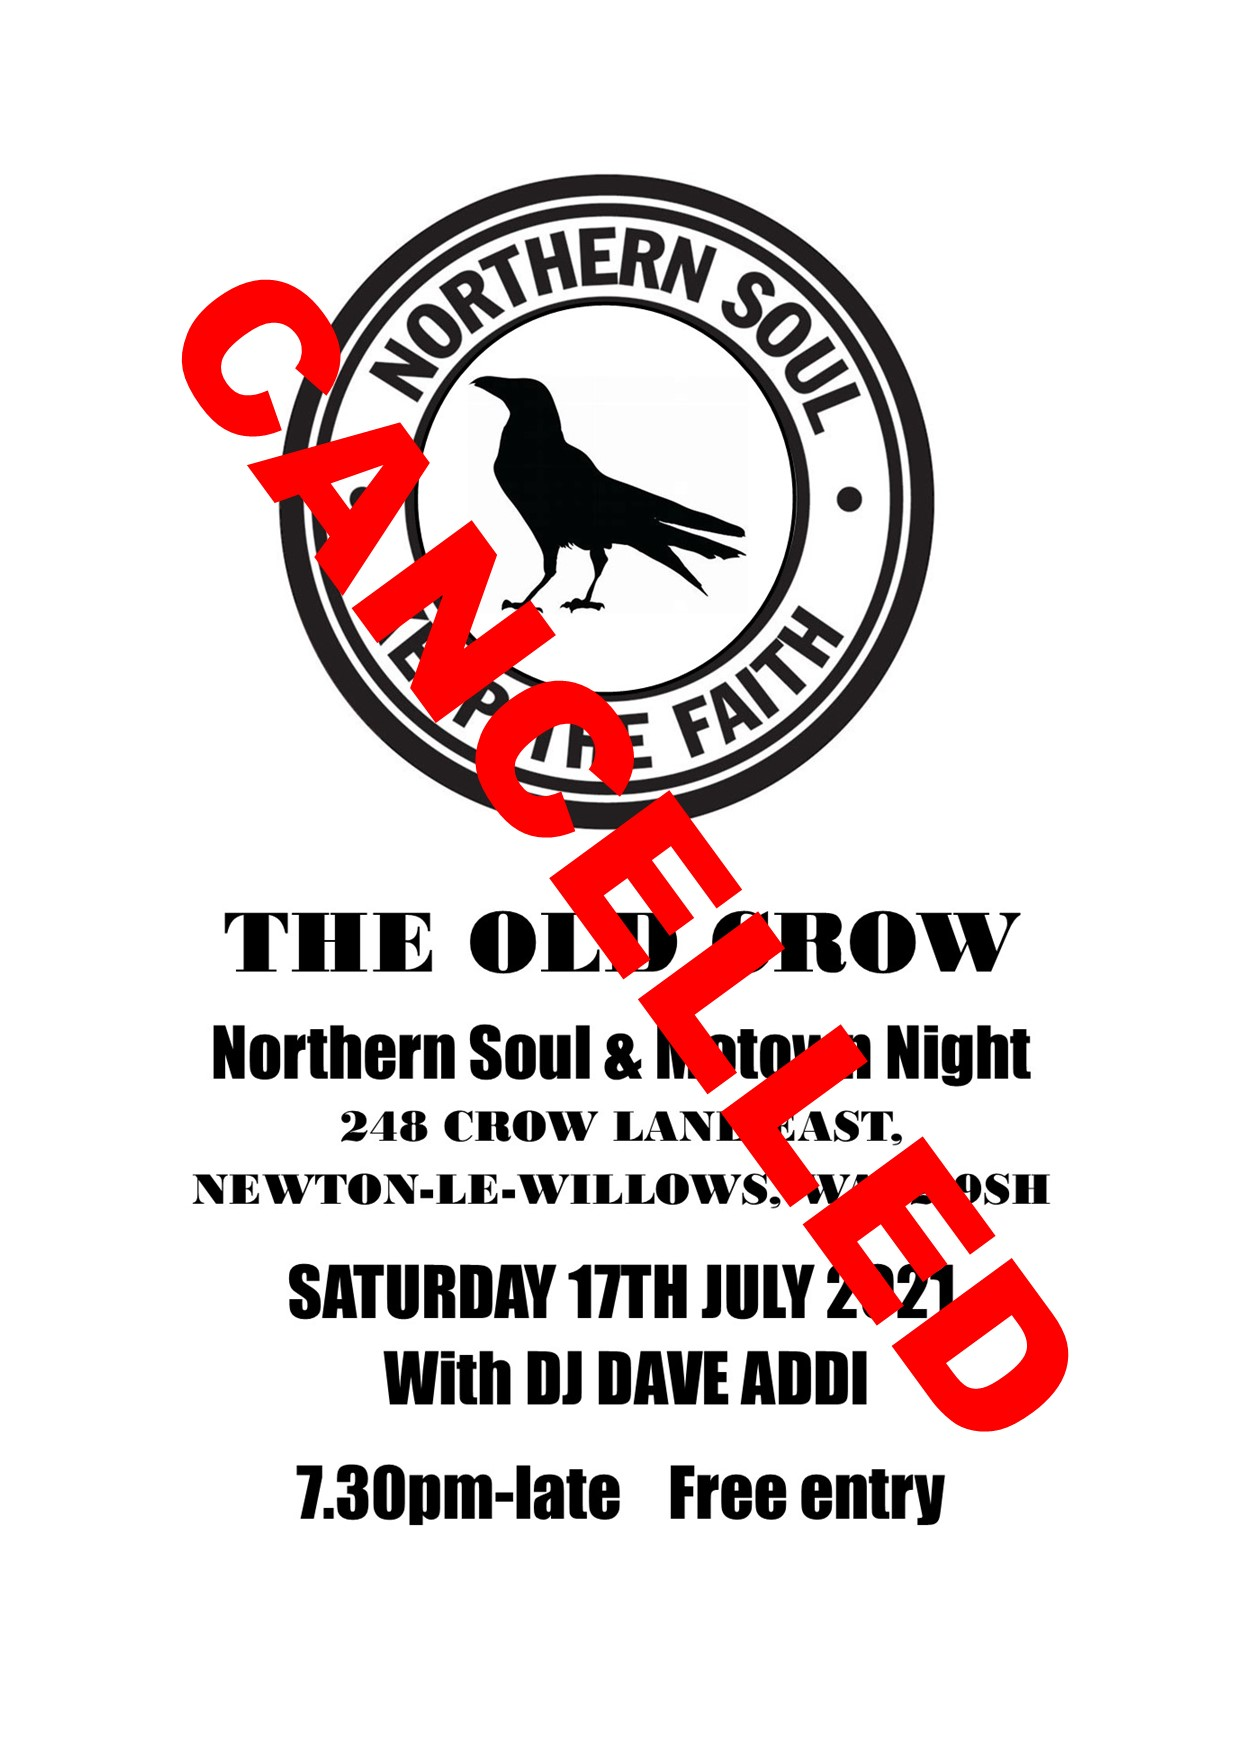 Old Crow Northern Soul  Motown Night Cancelled flyer